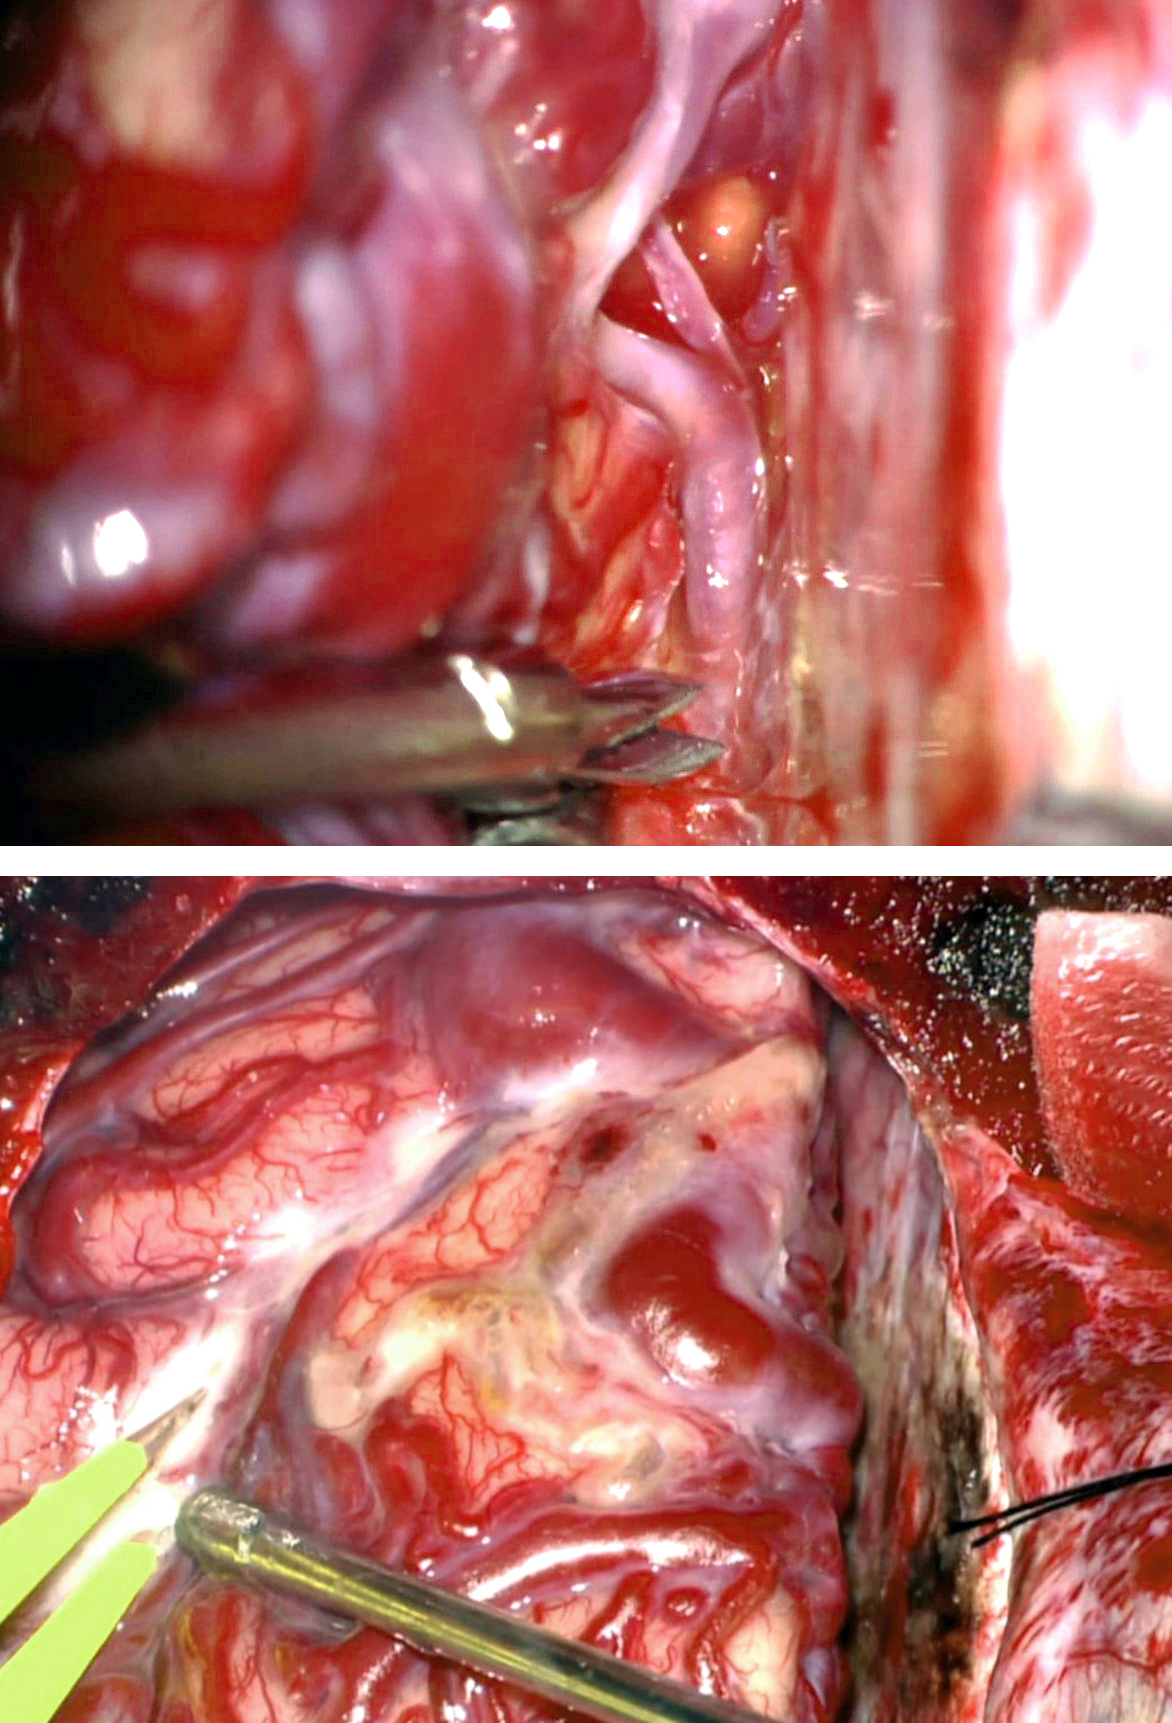 Figure 12: The AVM in Figure 10 is first disconnected along its interhemispheric margin from the ACA feeders (upper image). Next, the MCA supply is disrupted on the lateral convexity using pial incisions guided by intraoperative CTA navigation (lower image). The head is in the anatomically neutral position.